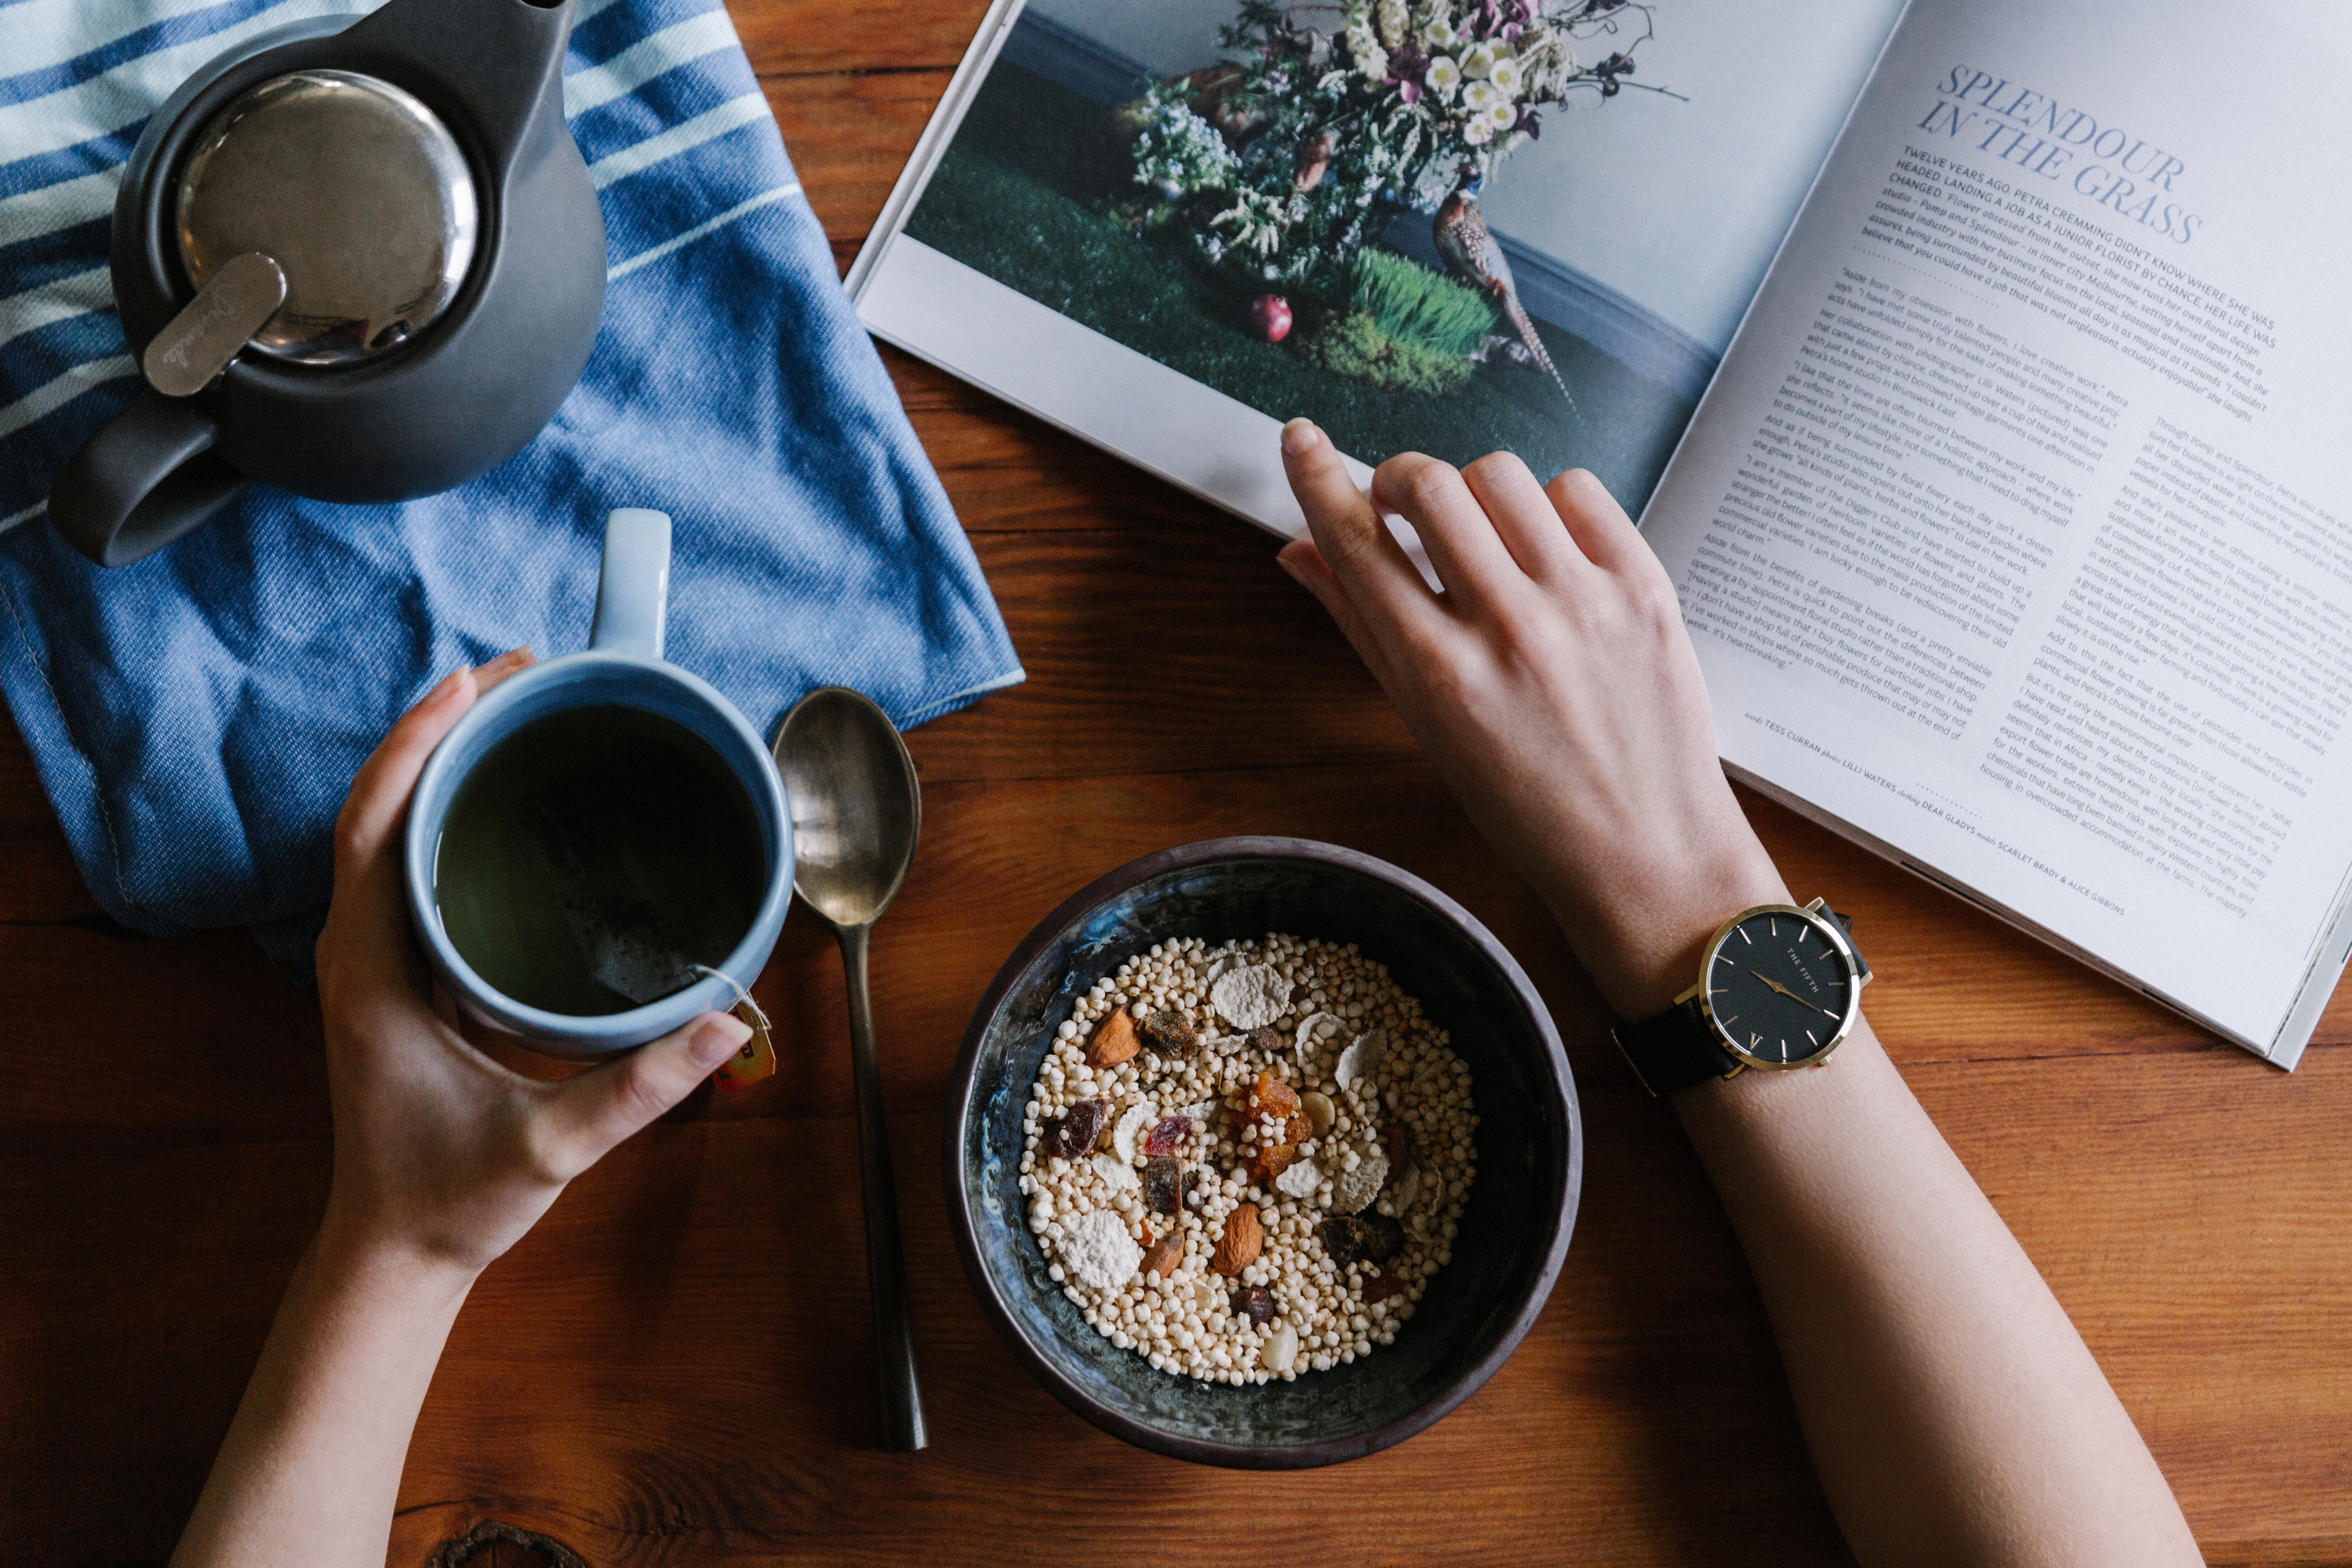 Keys to an effective morning routine